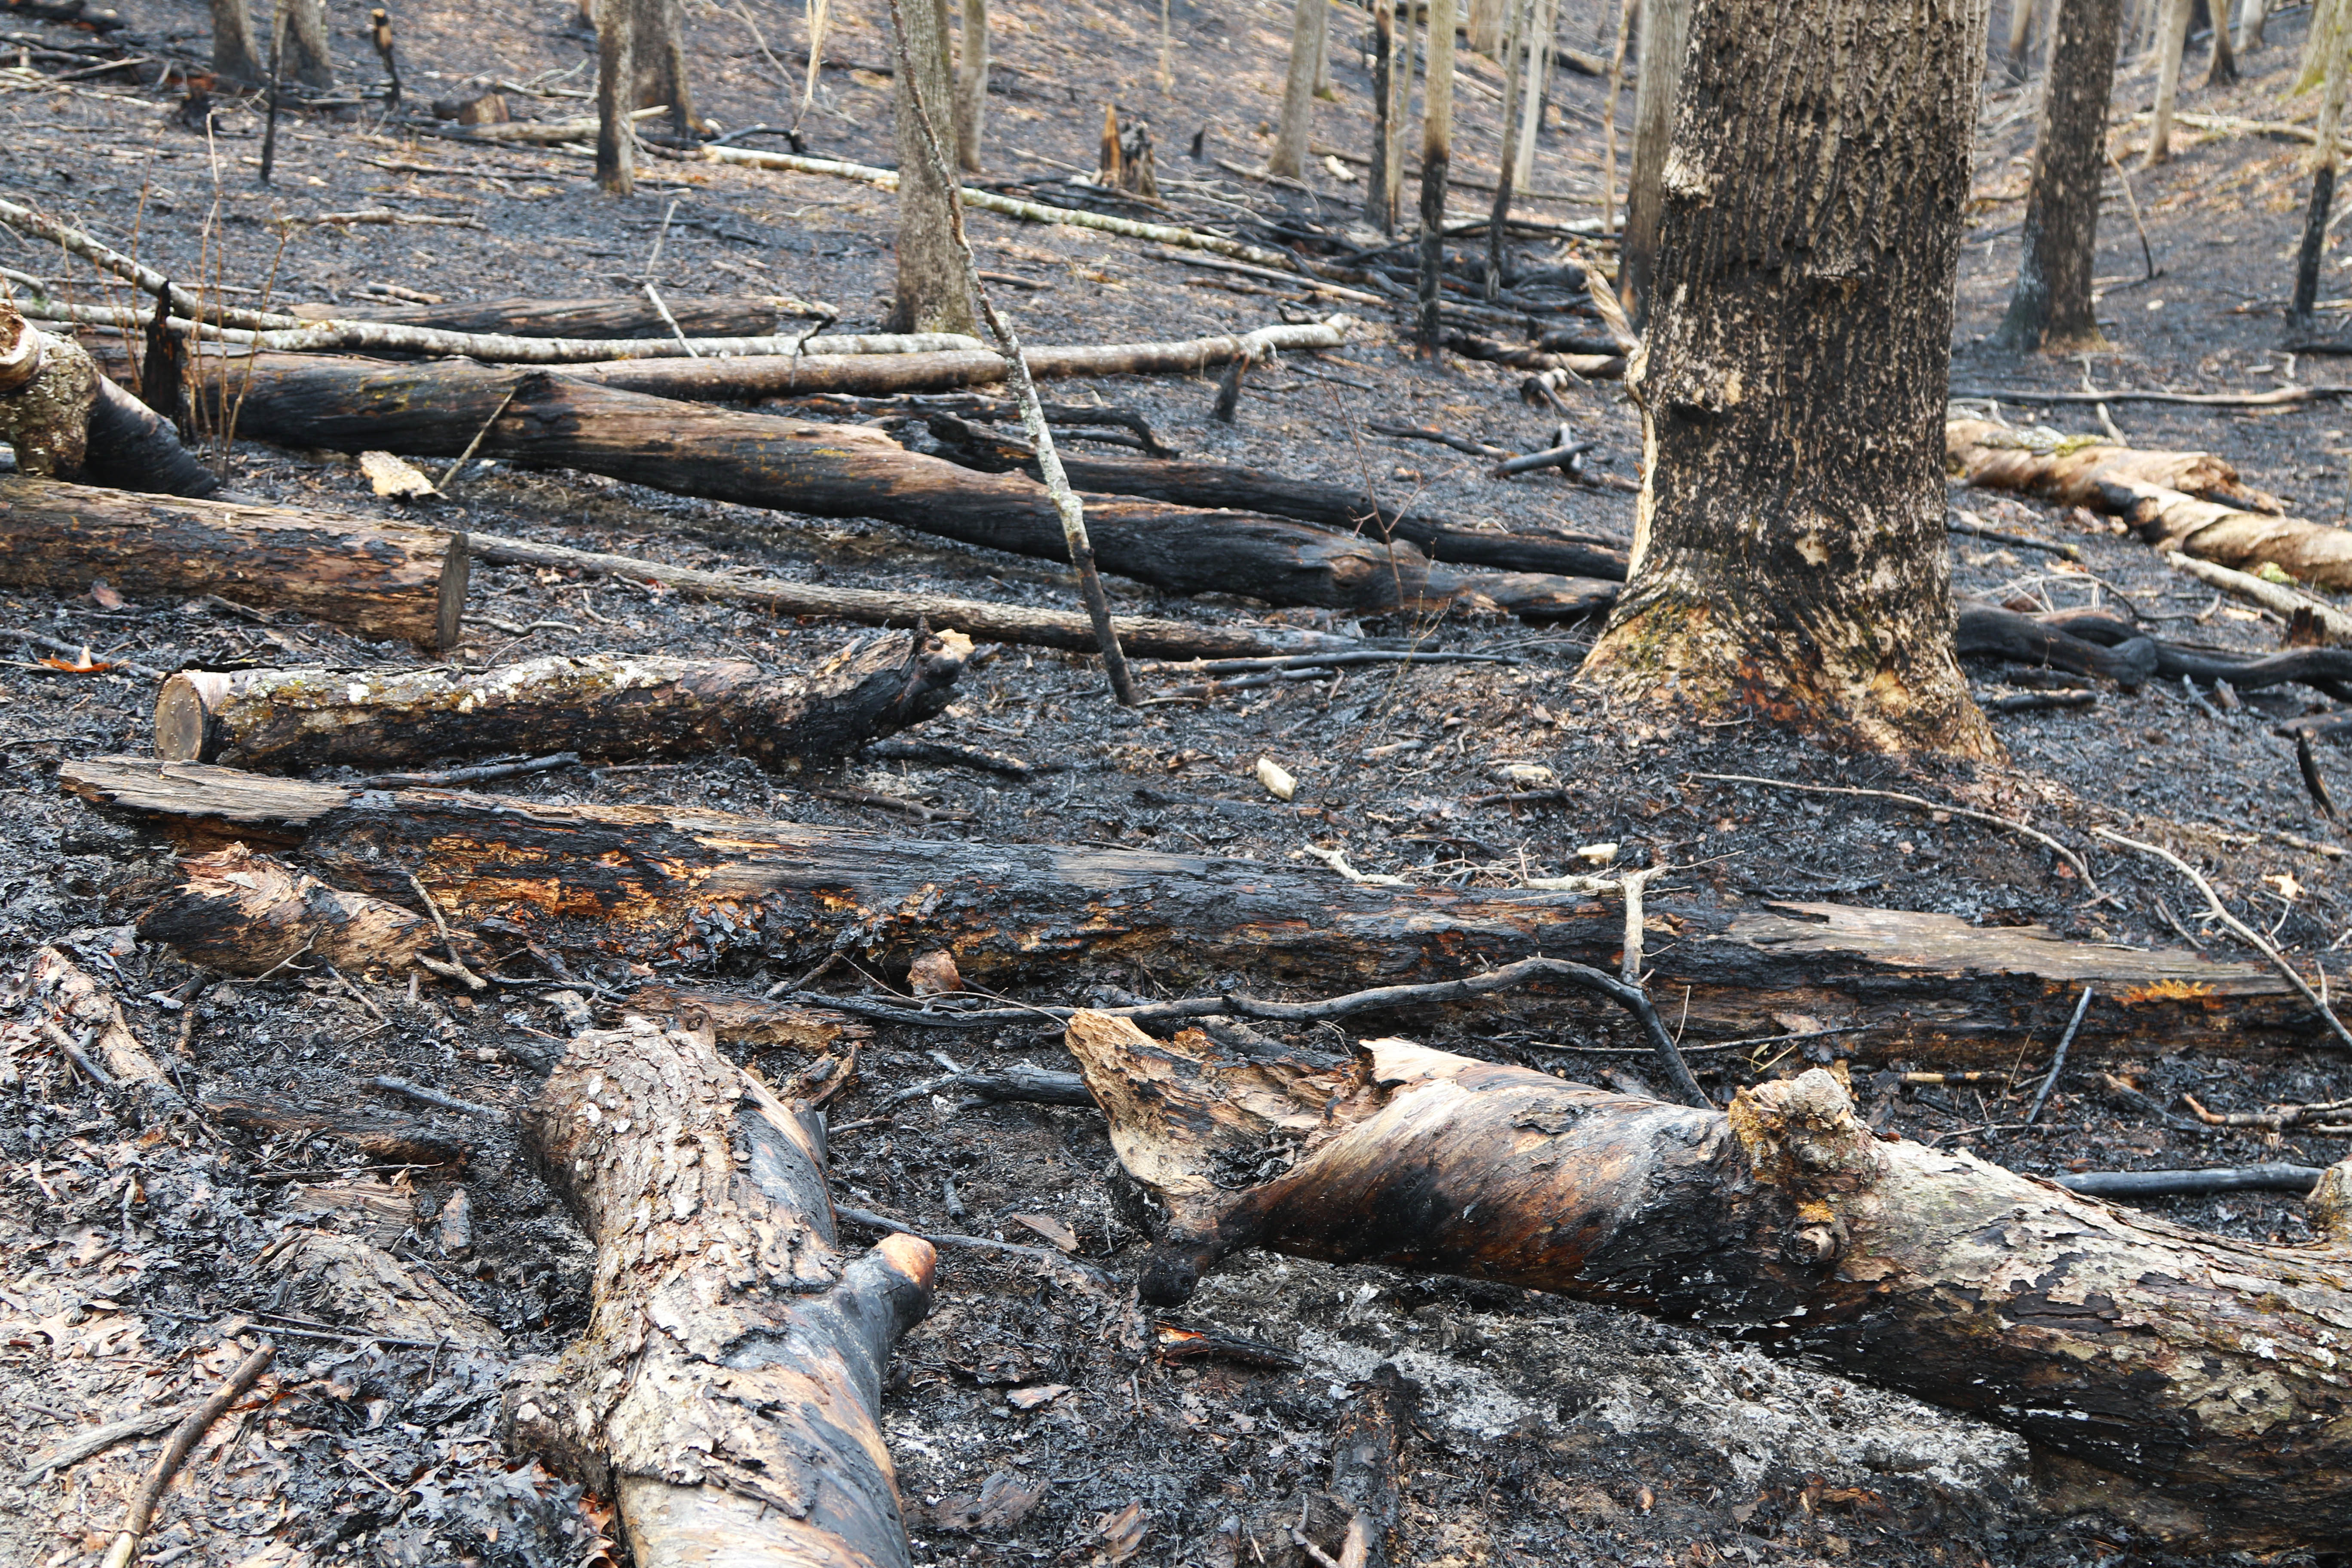 Trees in a partially burnt forest